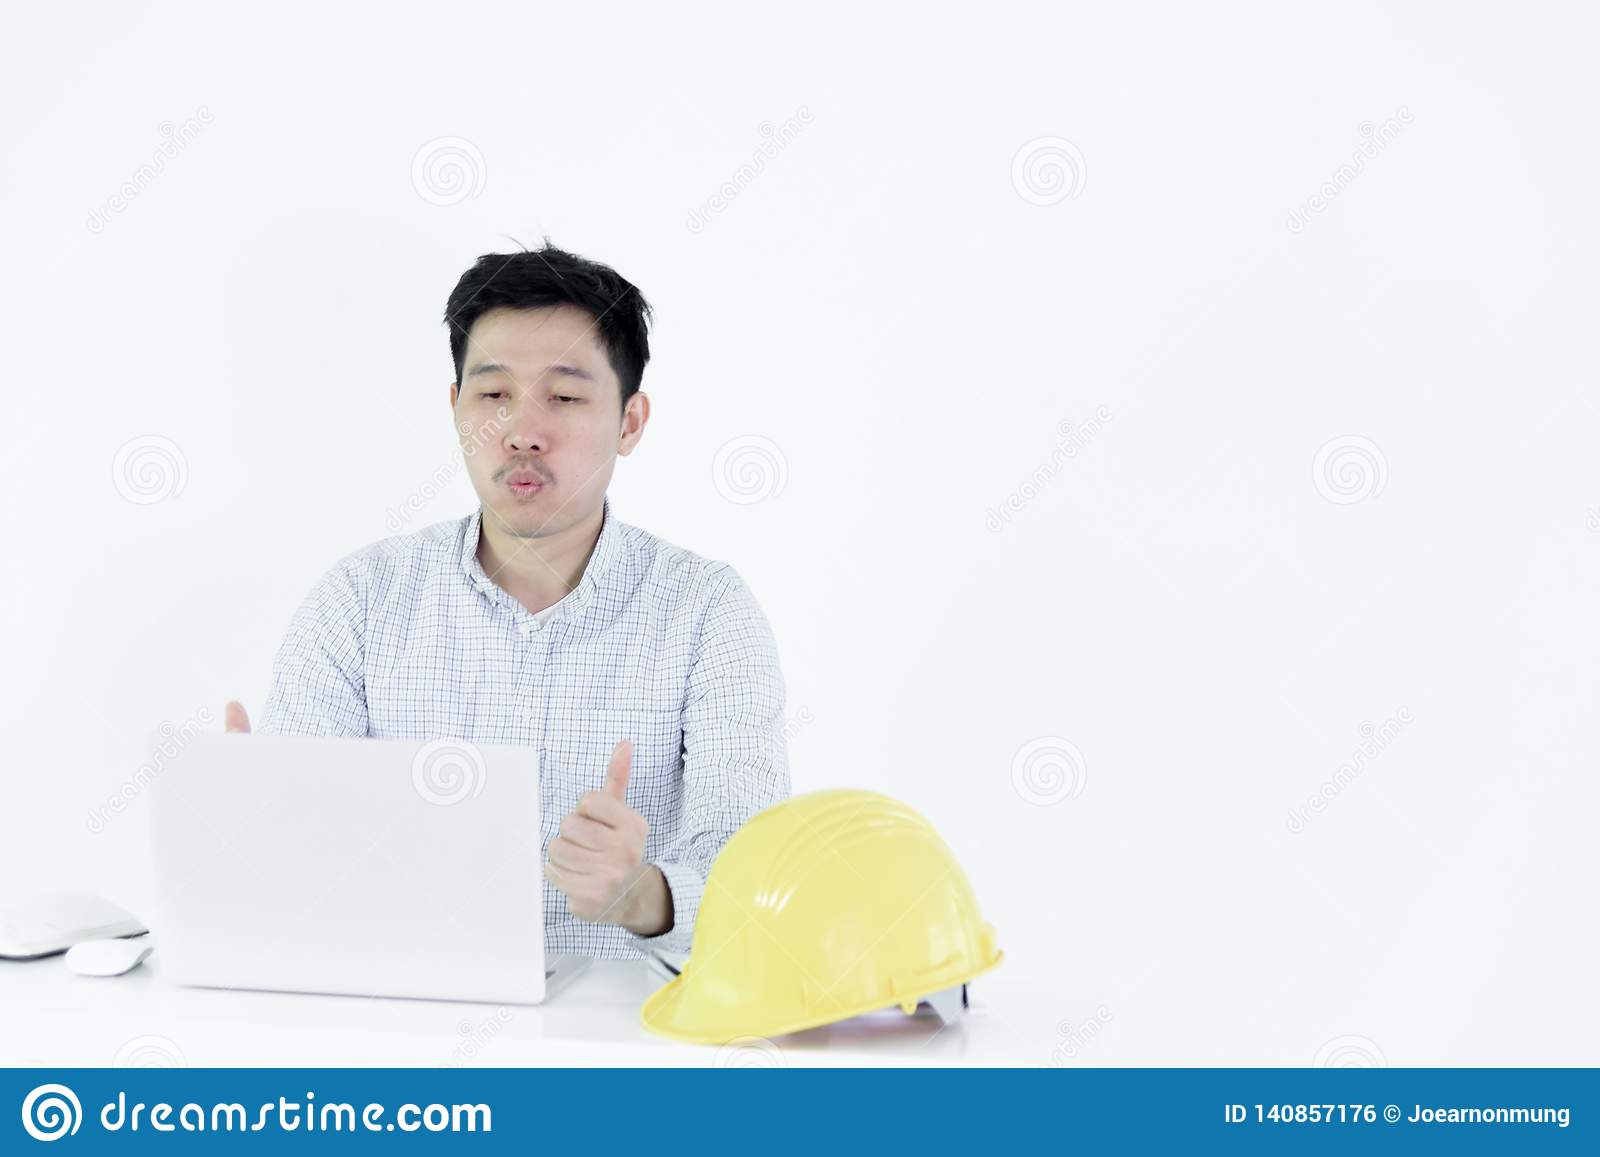 Asian employee engineer salary man sitting at desk and working with feeling successful and victory, isolated on white background